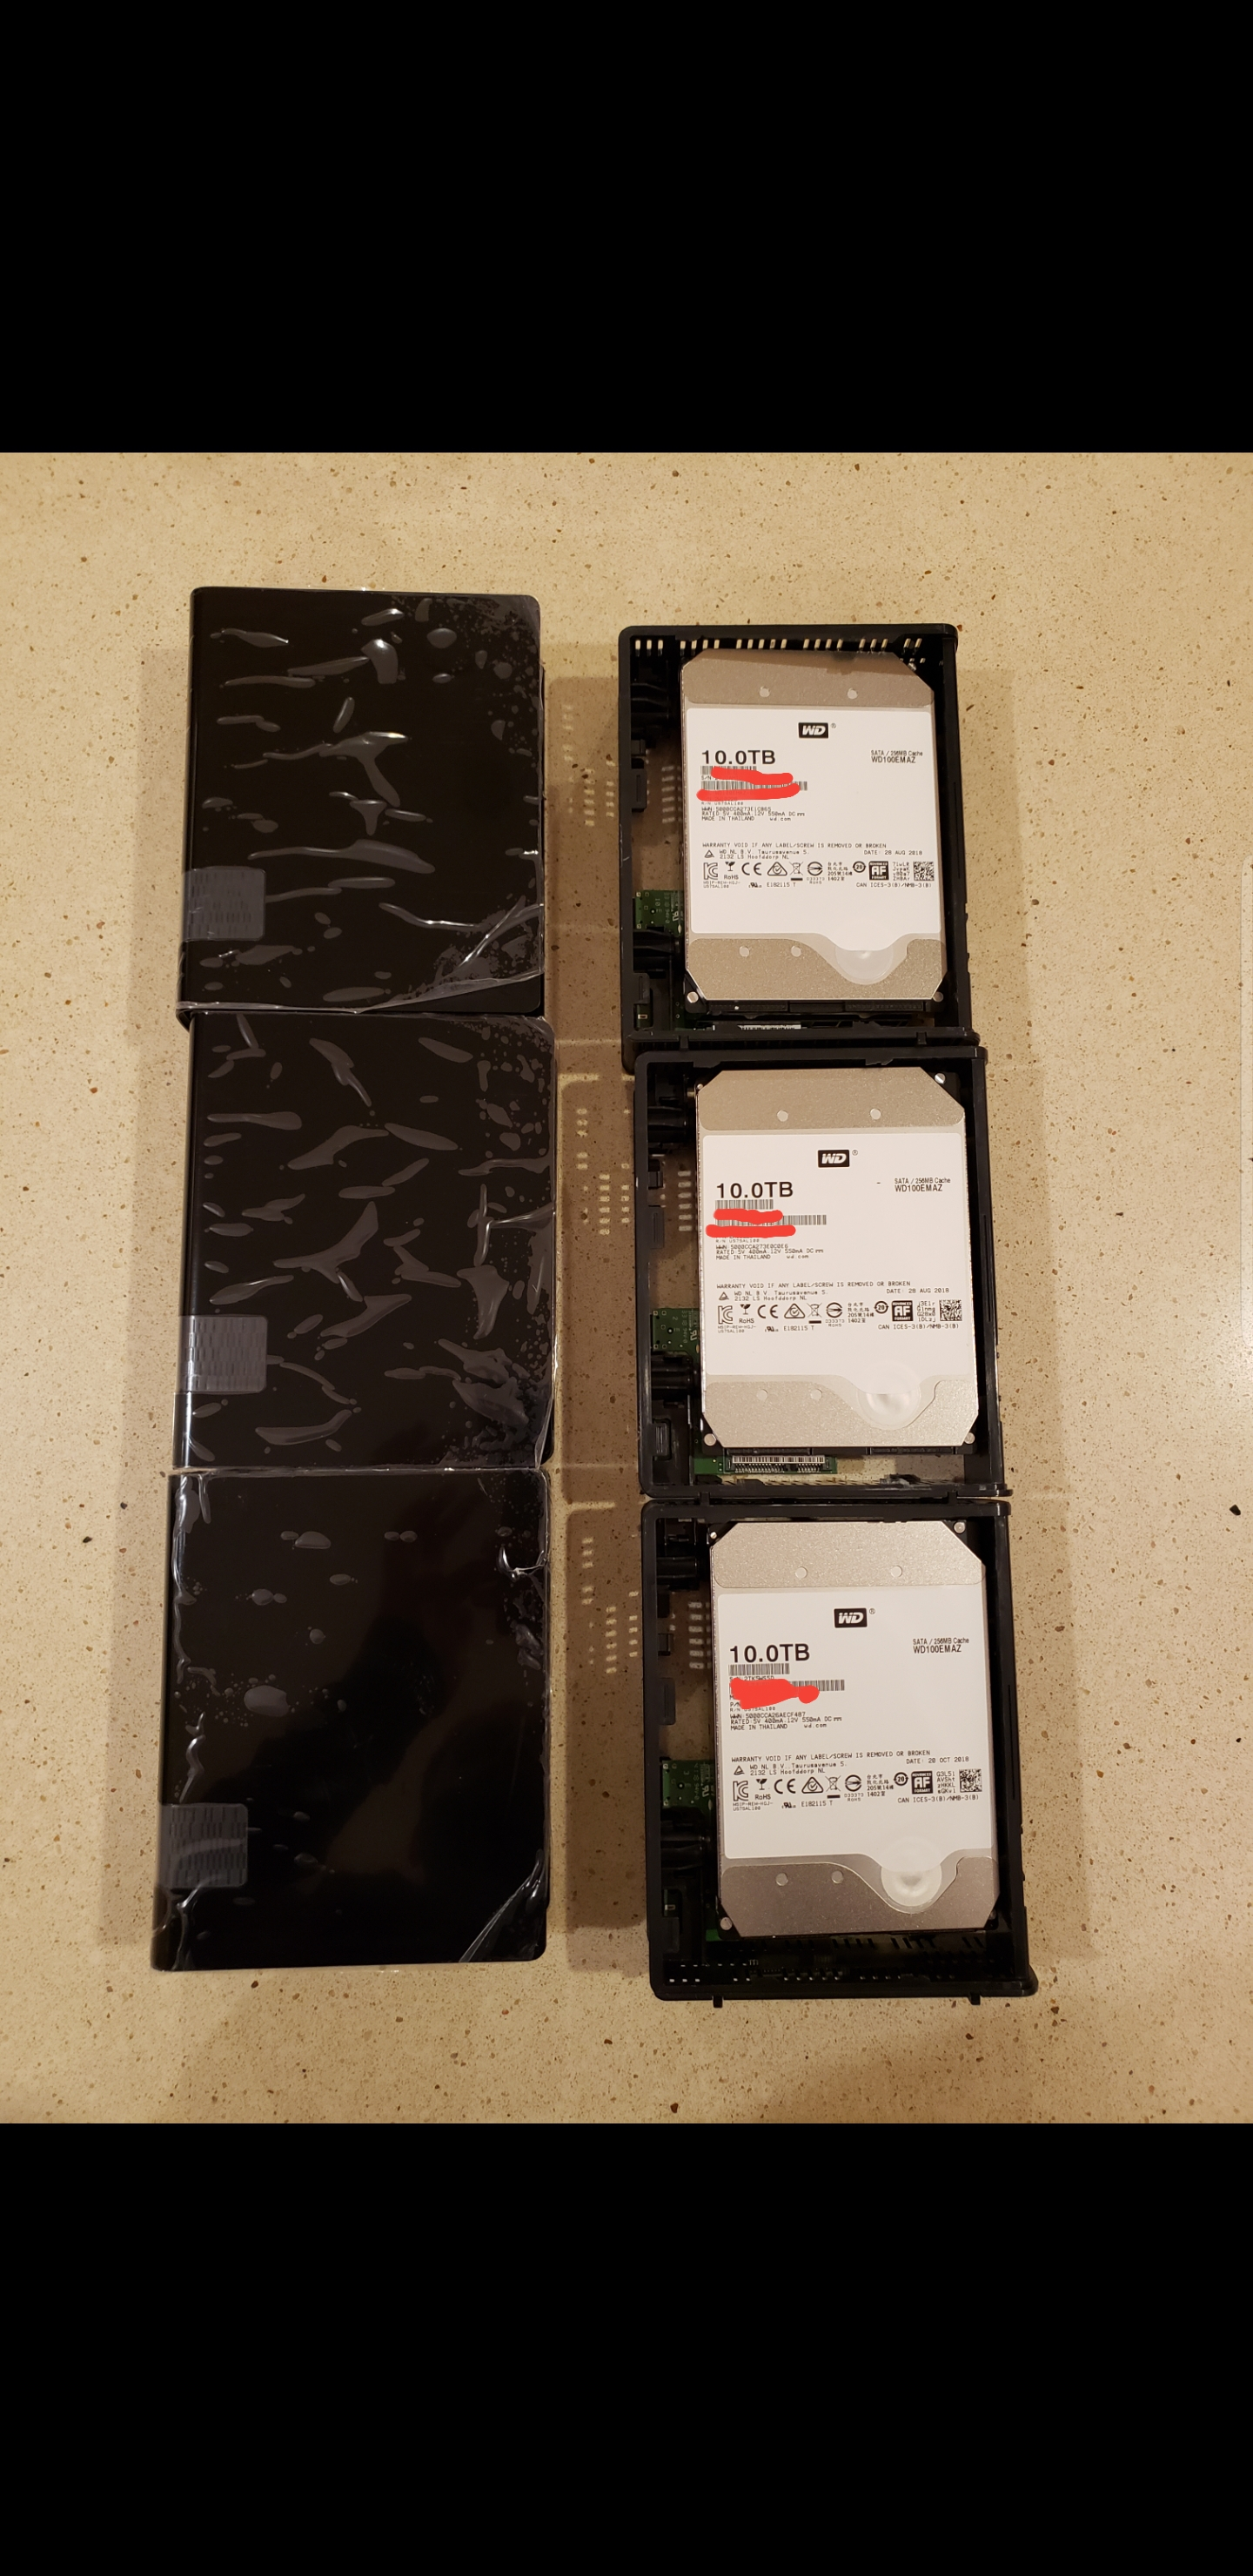 8TB shucked HDD install in Mac Pro 5,1 | MacRumors Forums